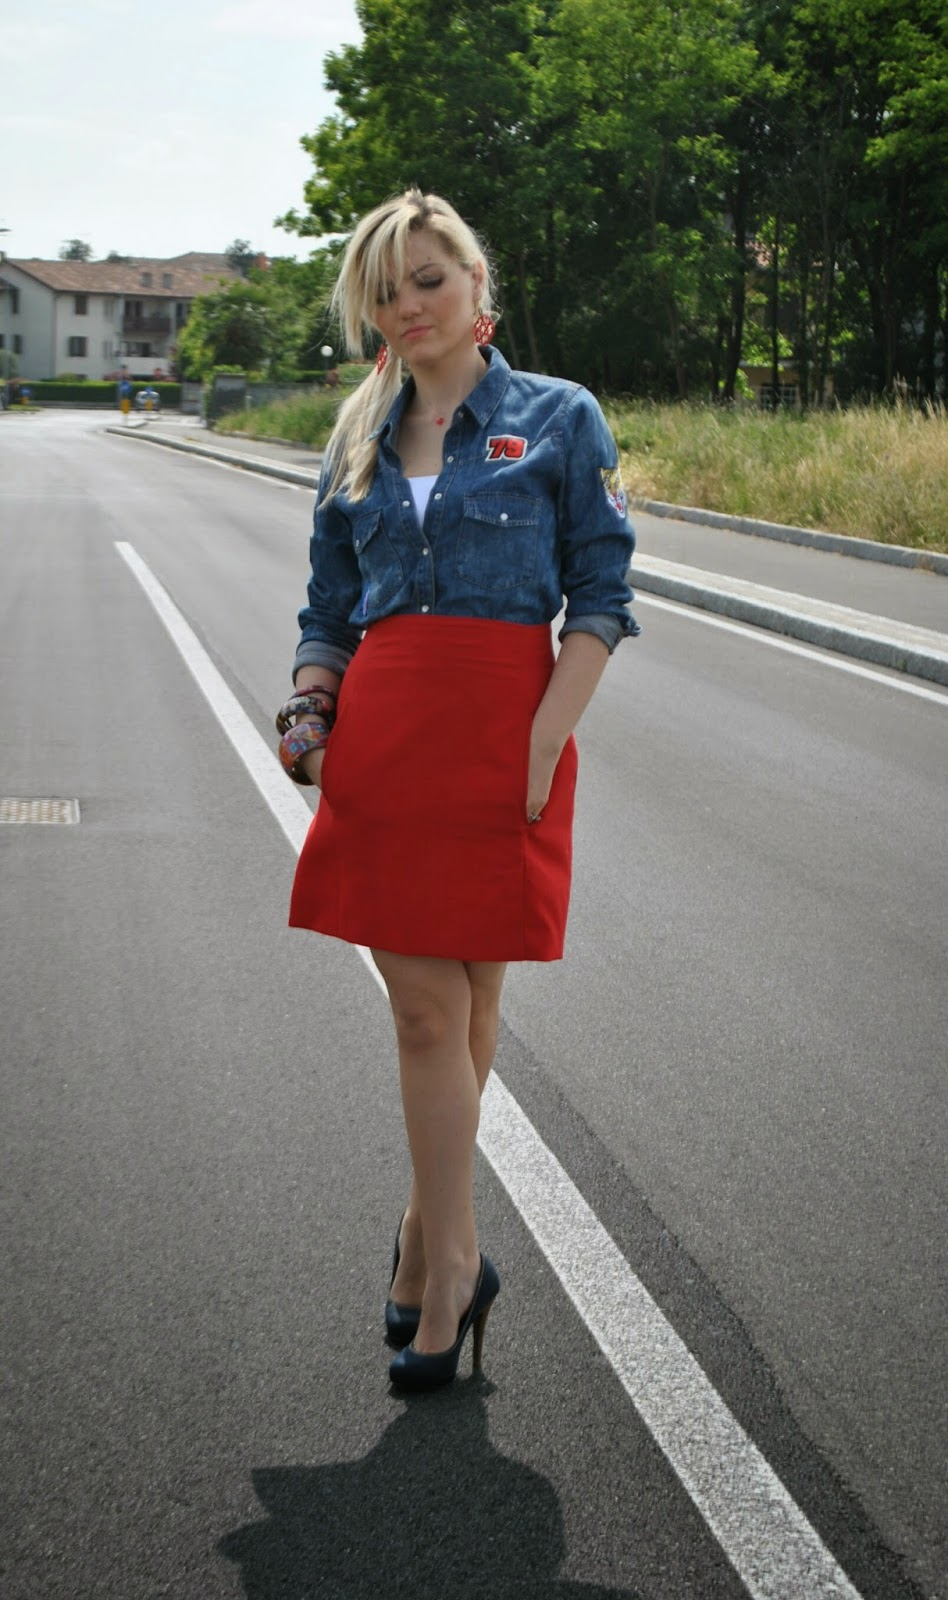 outfit gonna rossa a vita alta e camicia in denim outfit gonna a vita alta outfit camicia in denim come abbinare la camicia in denim fashion blogger italiane outfit di mariafelicia magno fashion blogger di colorblock by felym outfit gioielli giolina e angelo outfit maggio 2014 outfit primaverili blog di moda di mariafelicia magno abbinamenti gonna a tubino tacchi e gonna come abbinare la gonna rossa mariafelicia magno blogger di colorblock by felym occhiali da sole carrera camicia in denim con applicazioni pimkie decolletè di jeans replay bracciali desigual